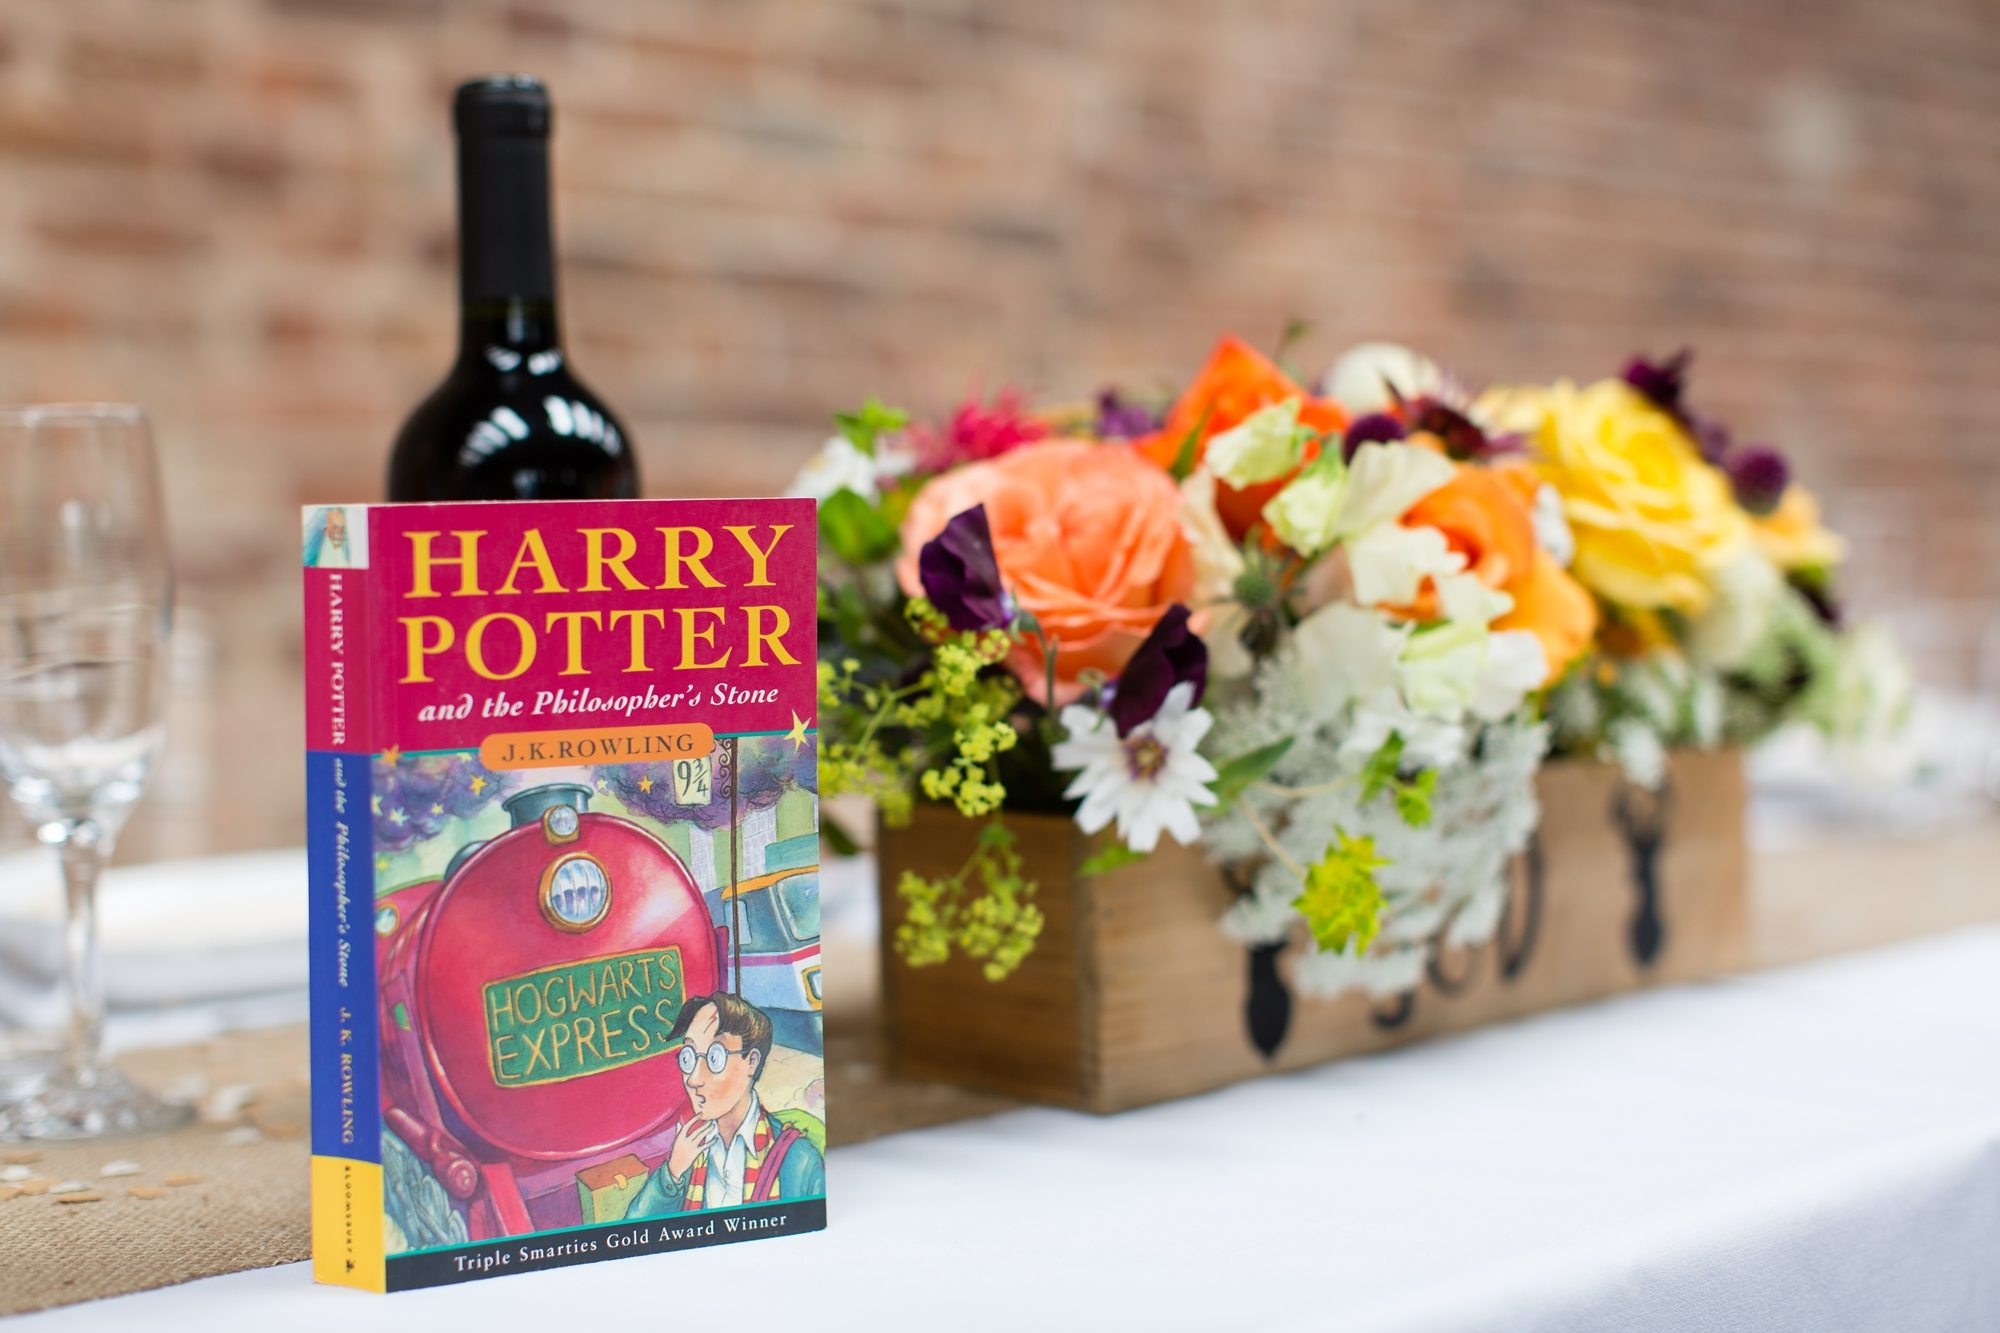 Harry Potter and the philosopher's stone book next to winde bottle and flowers